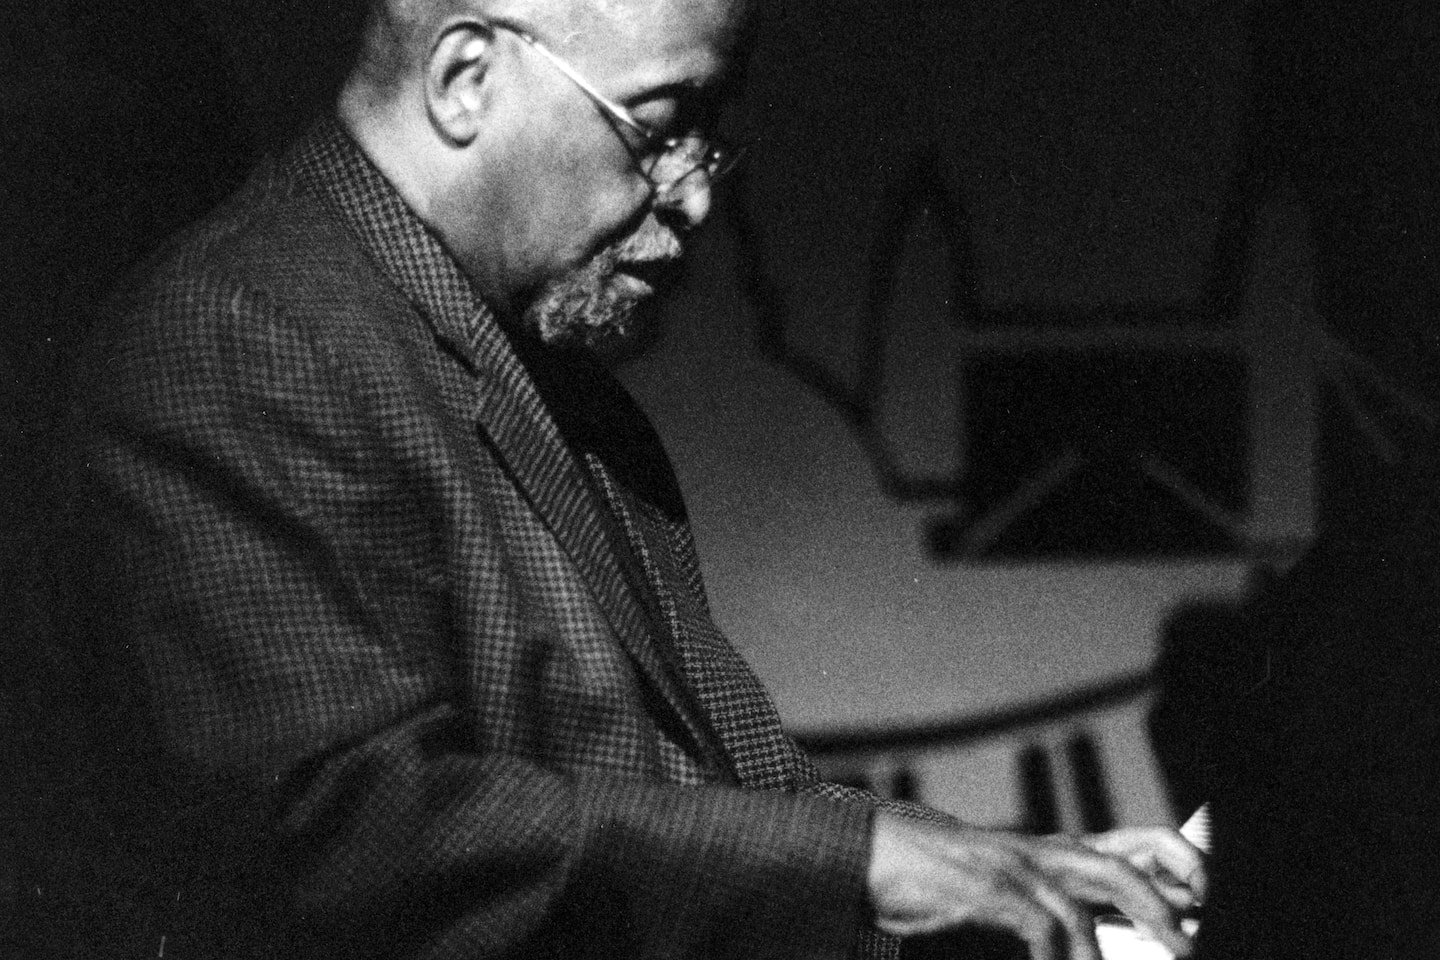 Junior Mance, jazz pianist whose chords were built on the blues, dies at 92